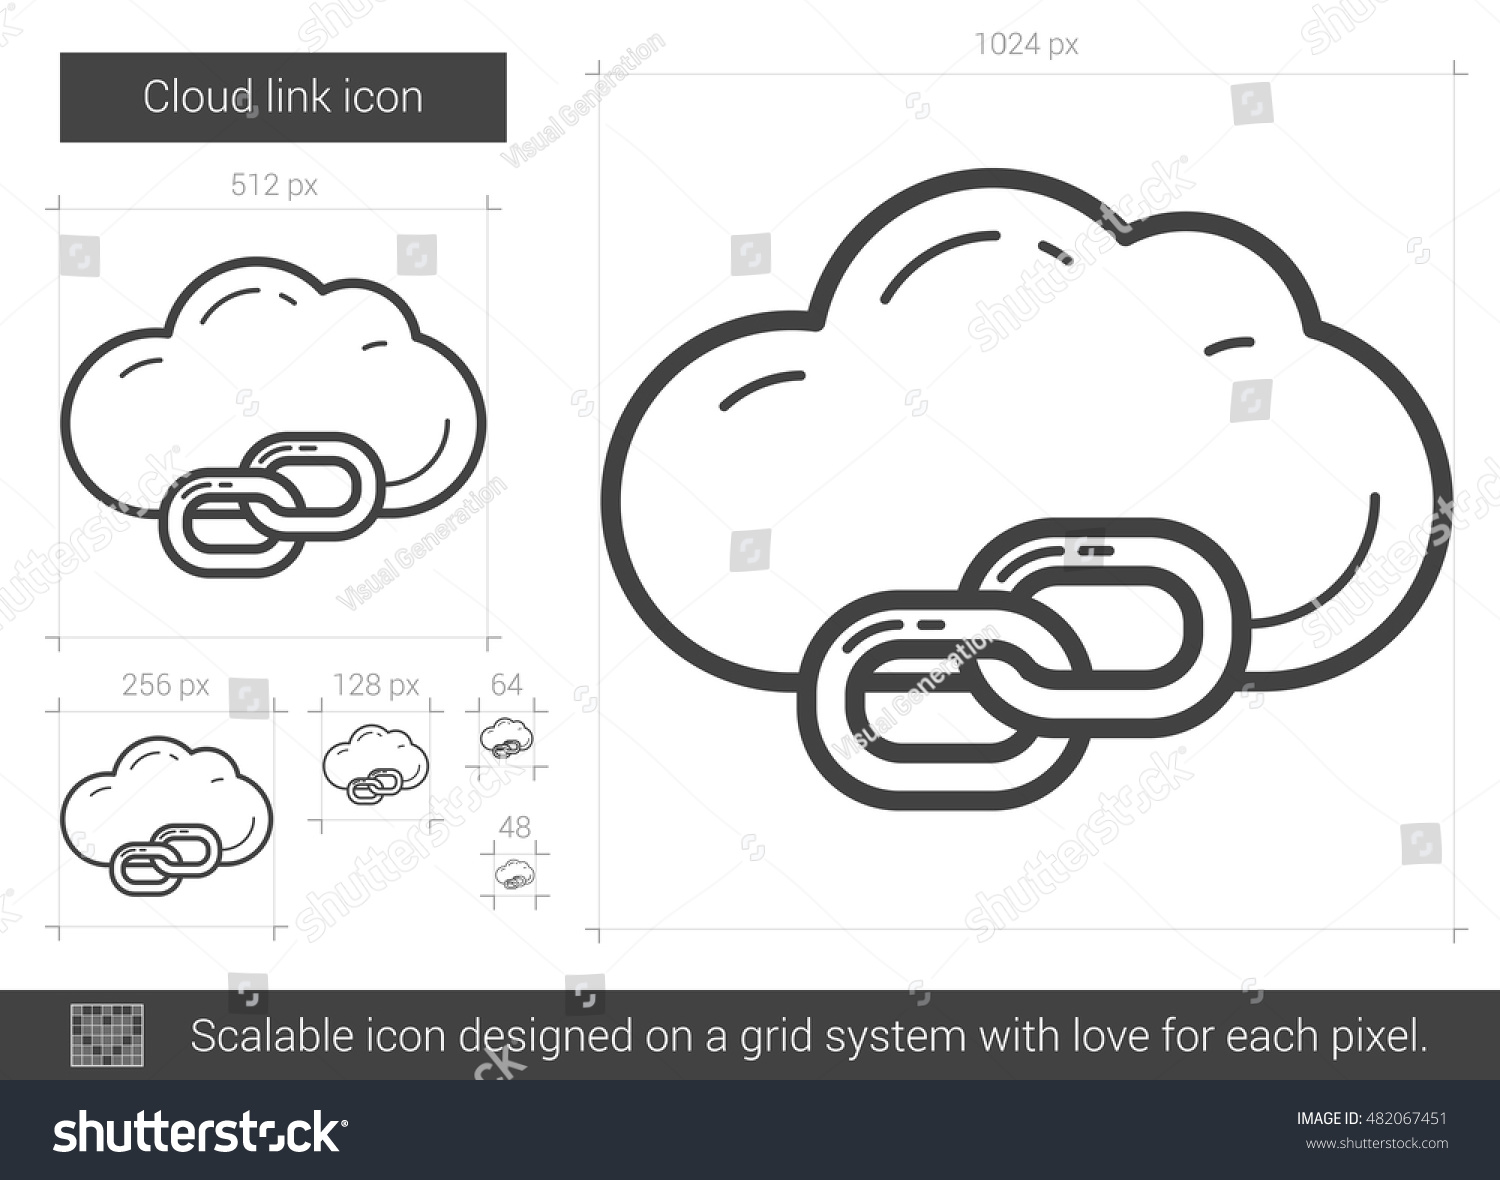 Cloud Link Vector Line Icon Isolated Stock Vector (Royalty